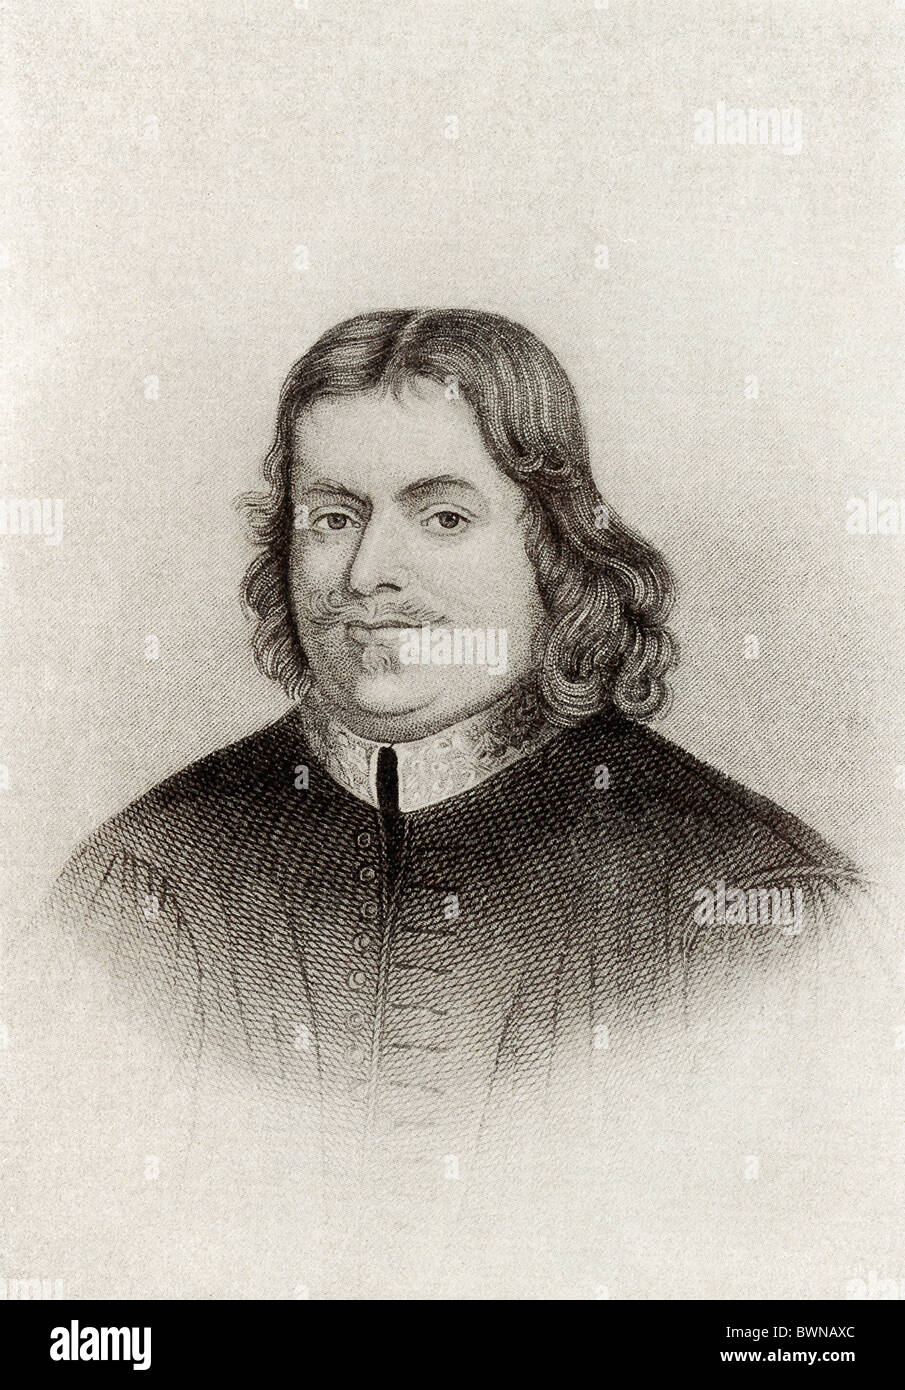 A Reformed Baptist, John Bunyan (1628-1688) was an English writer and preacher best known for his work 'Pilgrim's - Stock Image